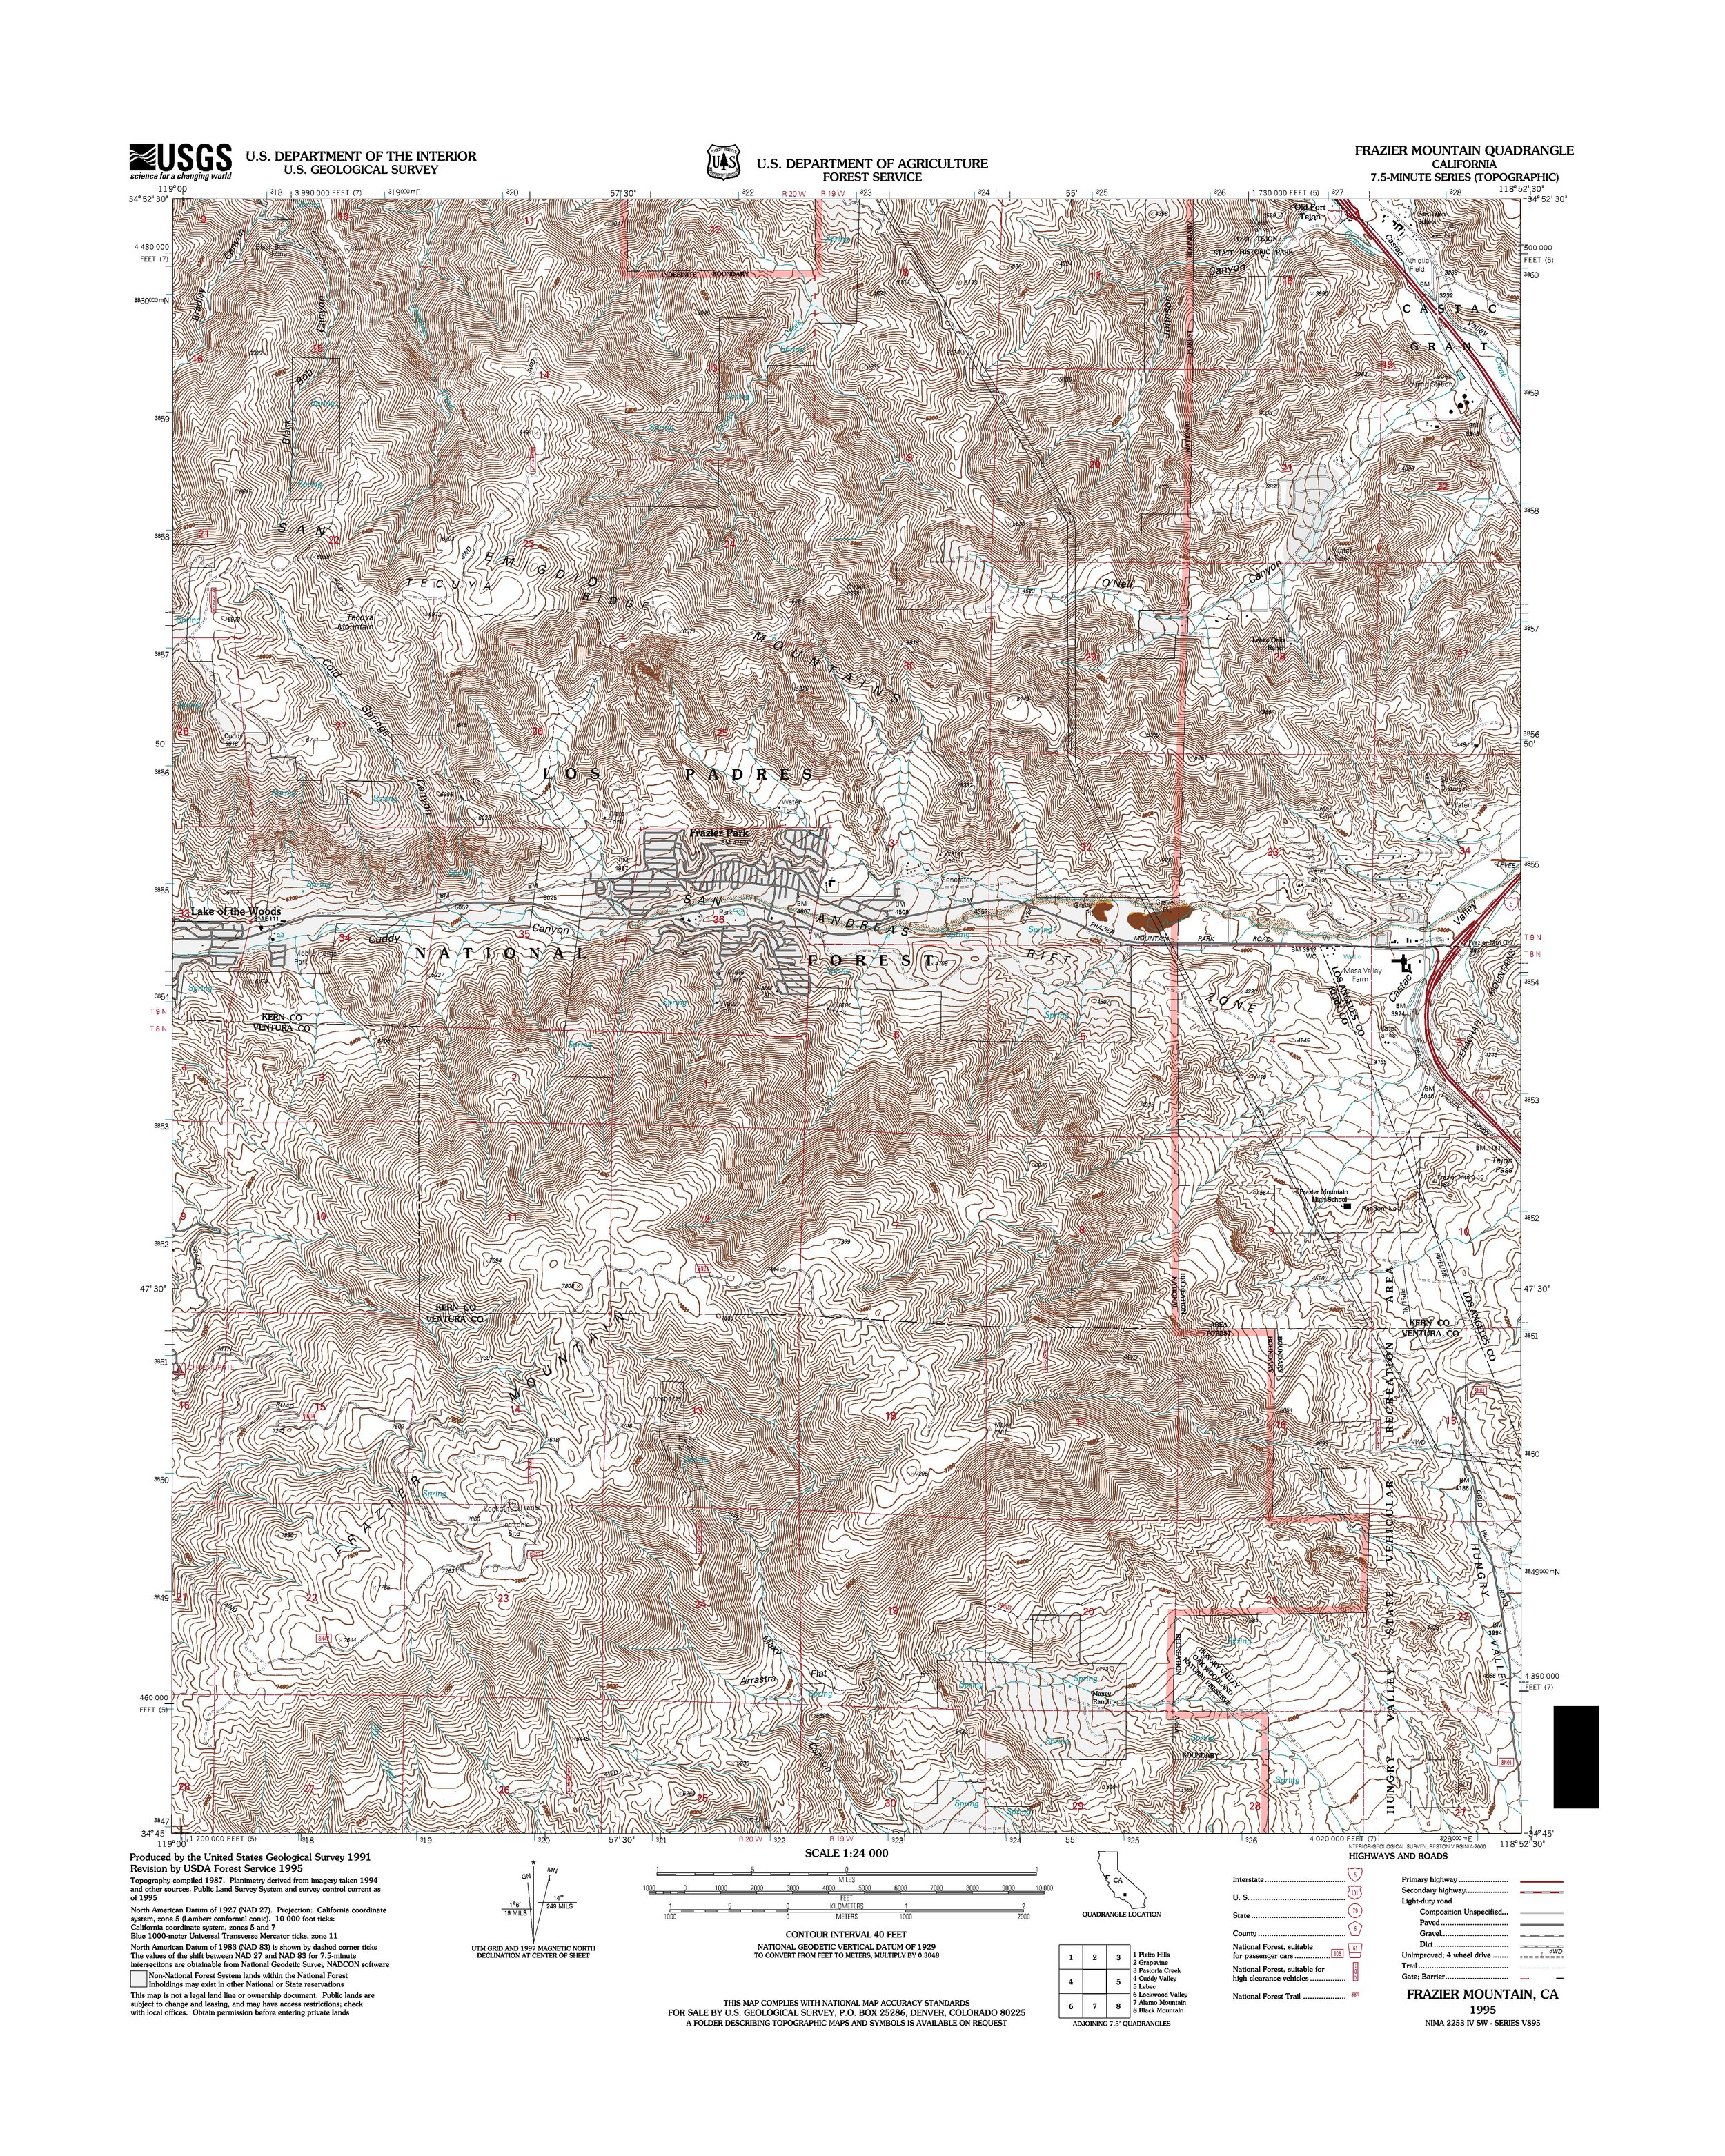 Frazier Mountain Topography Map